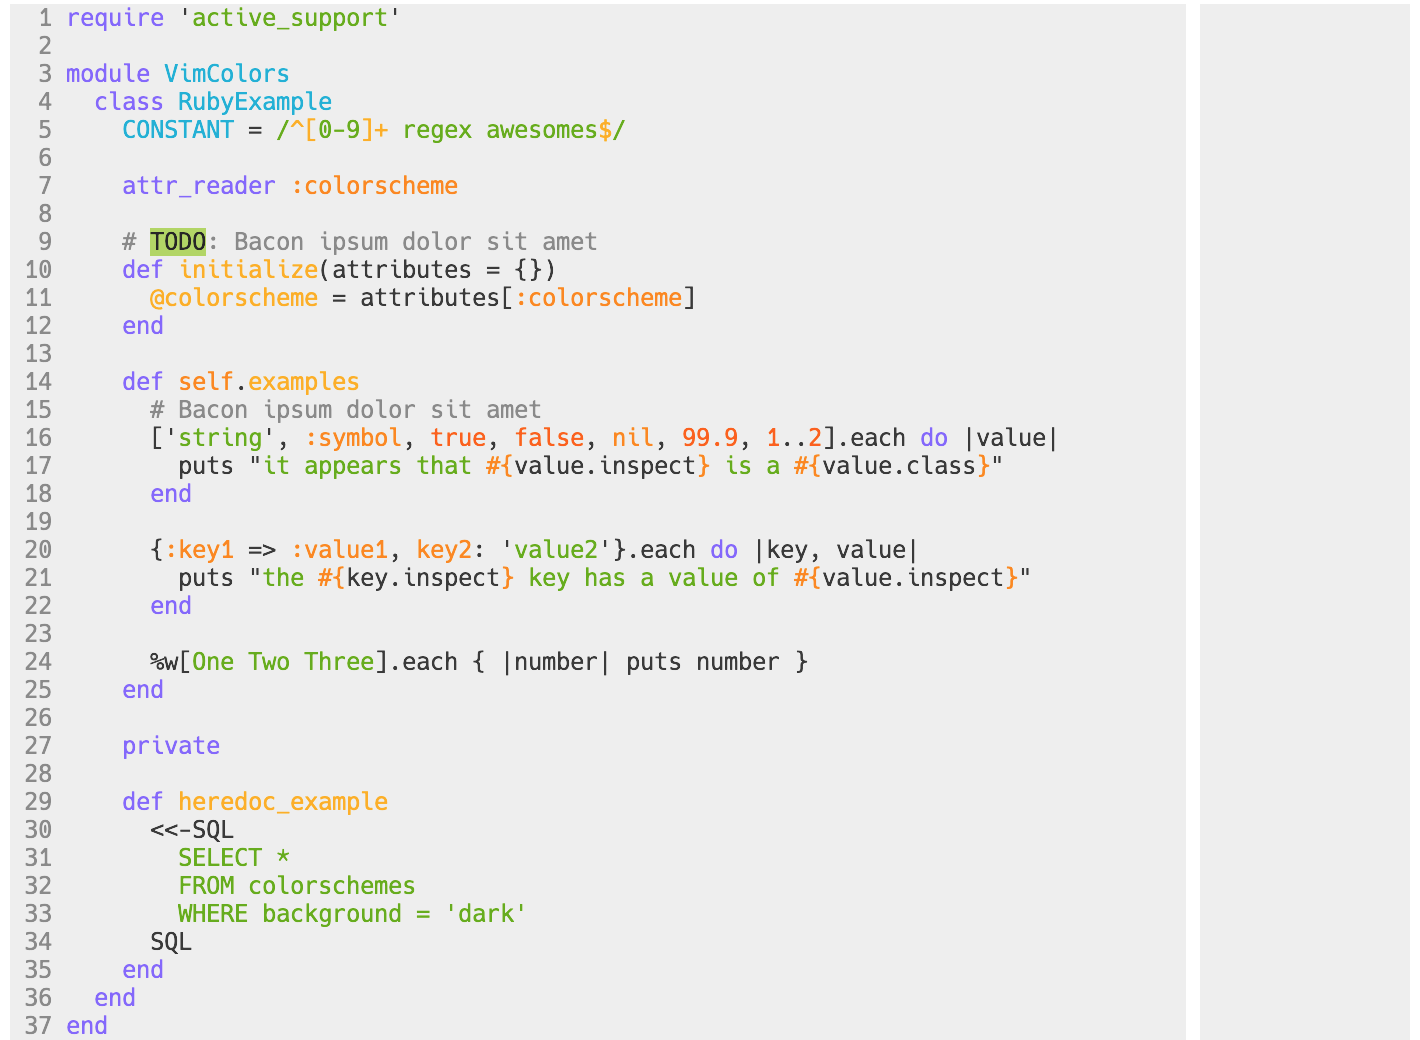 open-color.vim with light background in 256 colors